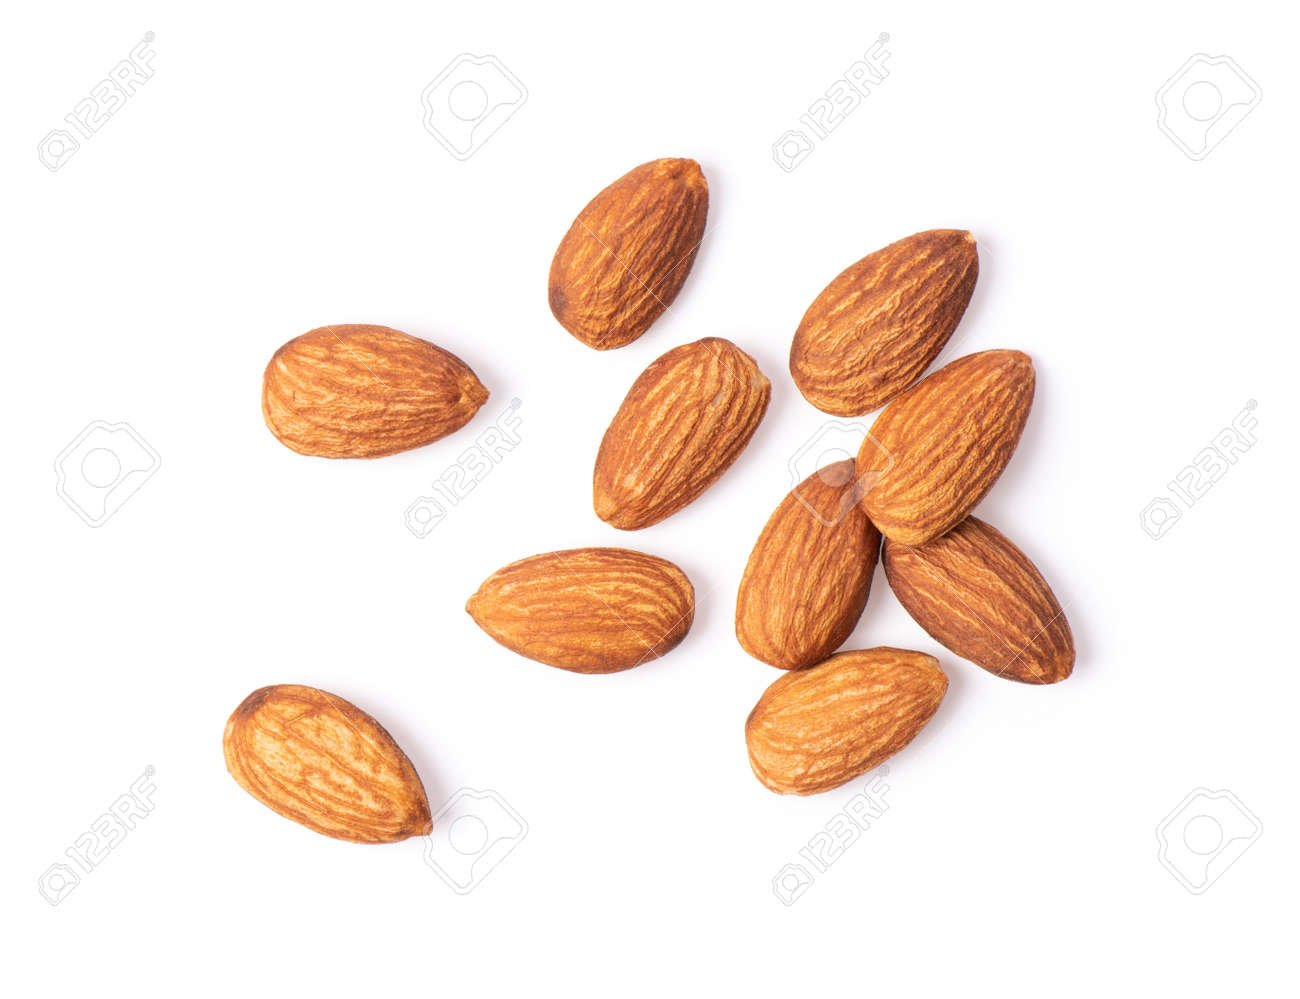 Almond. Nuts isolated on white background - 110849014